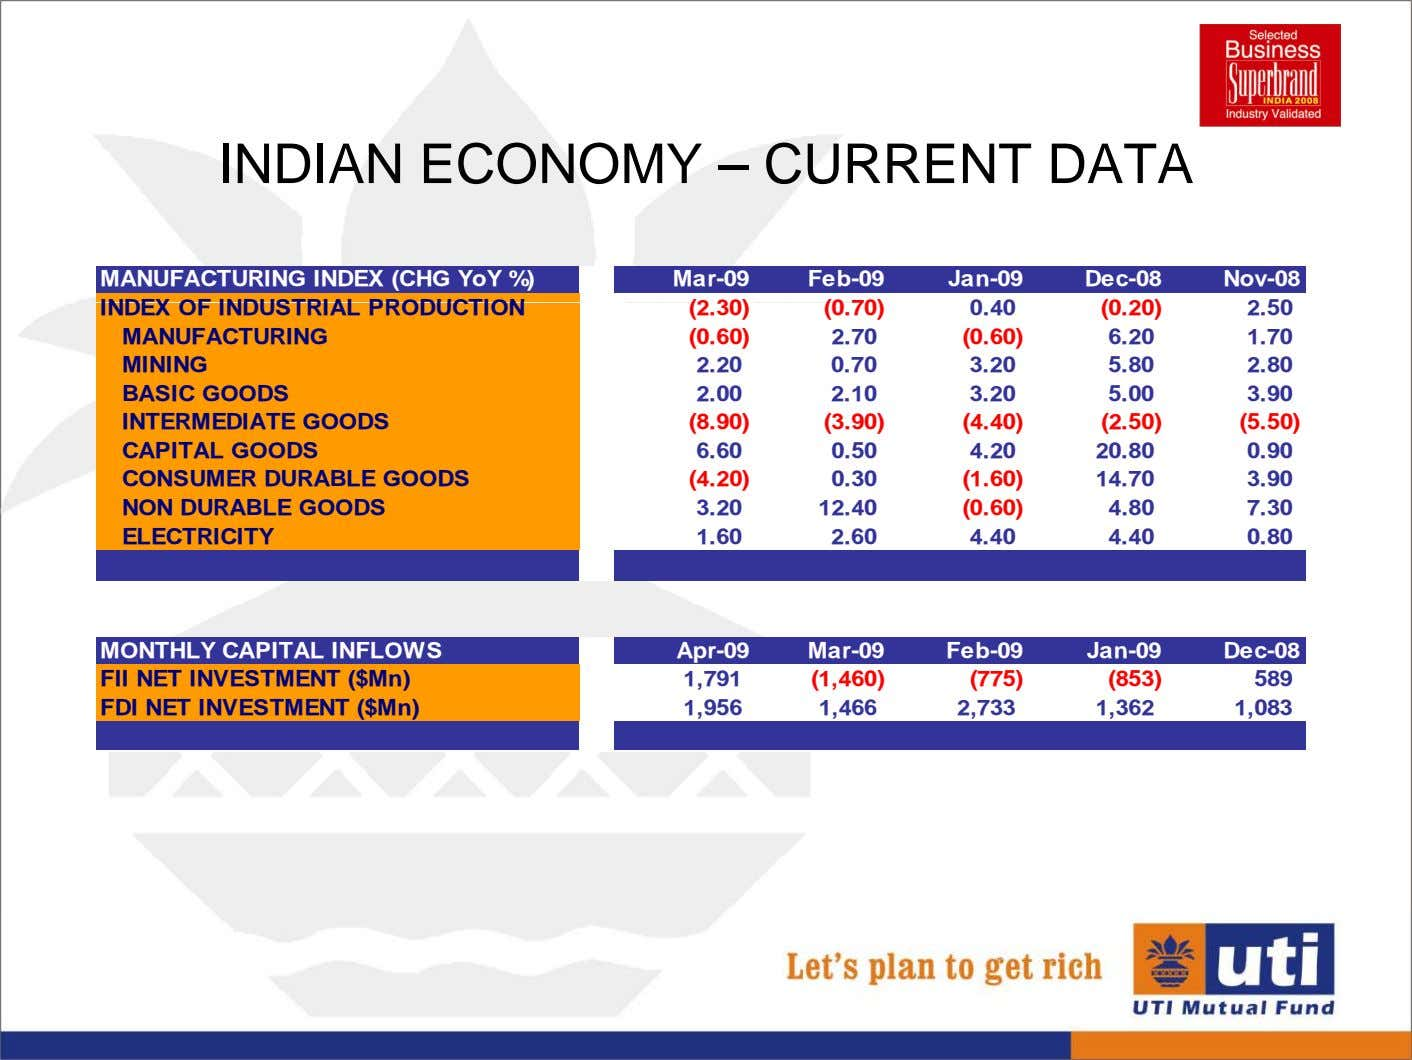 INDIAN ECONOMY – CURRENT DATA MANUFACTURING INDEX (CHG YoY %) Mar-09 Feb-09 Jan-09 Dec-08 Nov-08